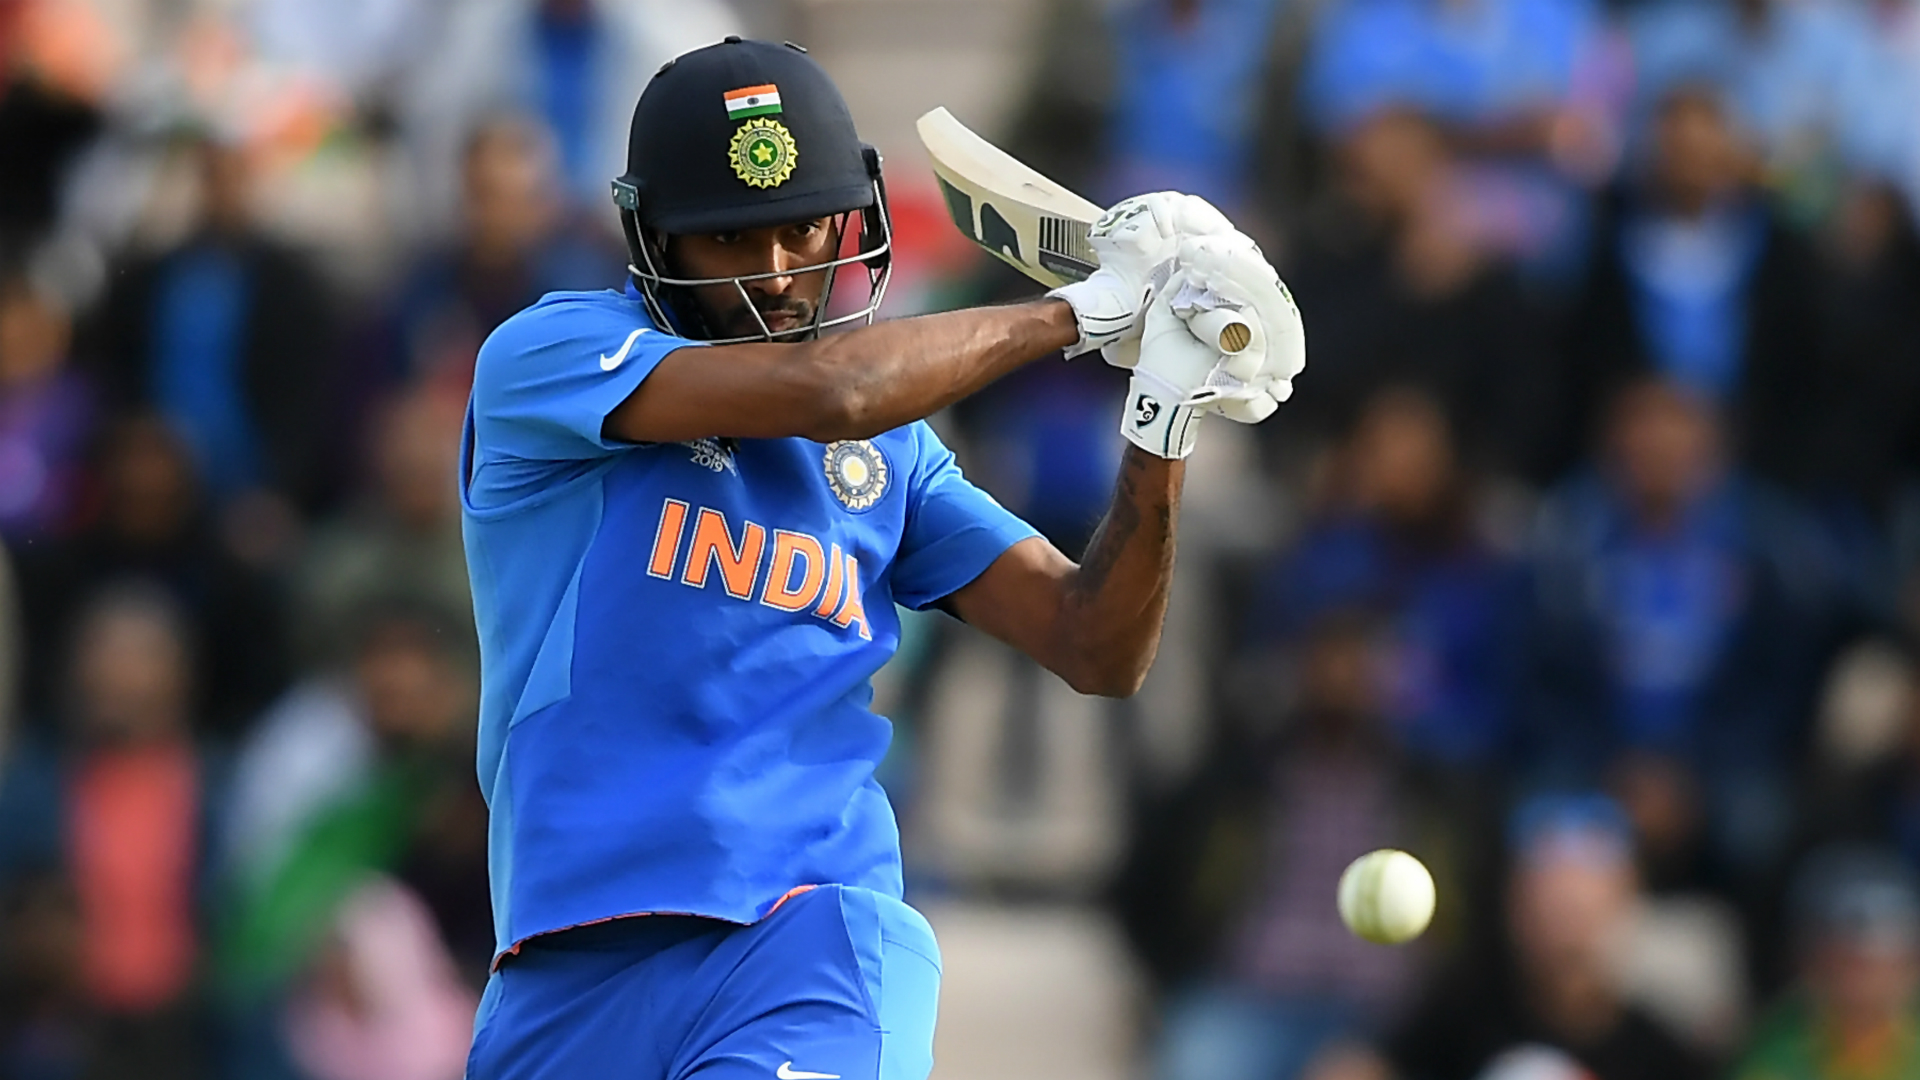 Hardik Pandya Puts Out an Emotional Post Recalling his Debut on This Day, Says, 'What a Memorable Journey it's Been so Far'